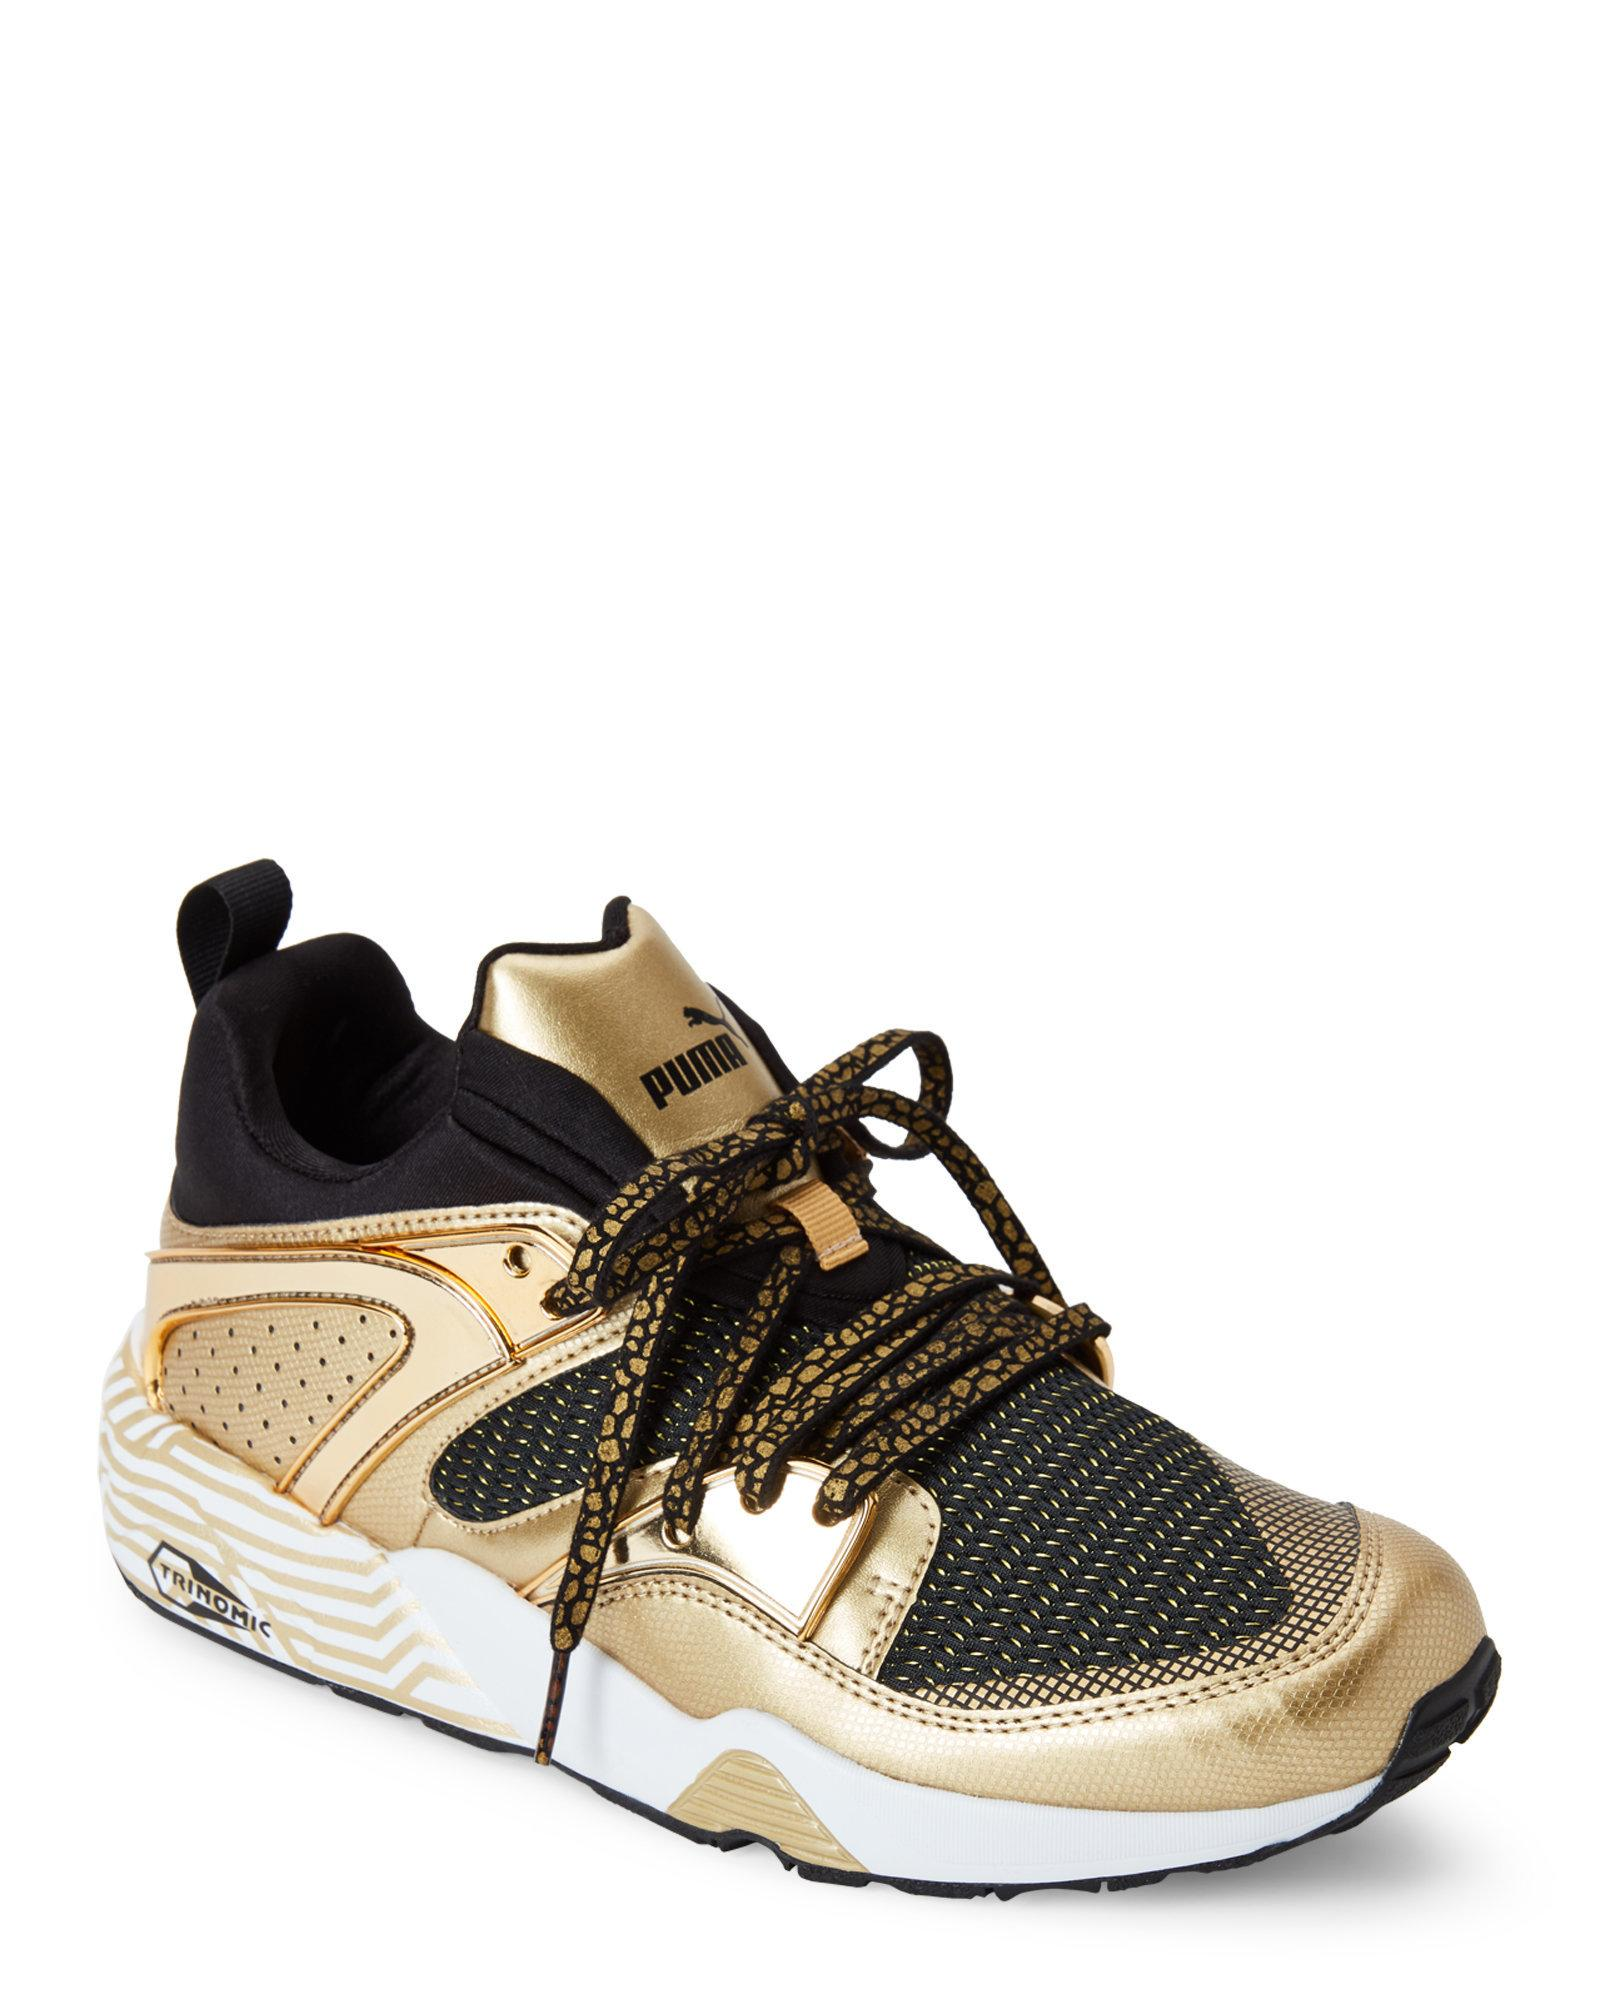 PUMA Black & Gold Blaze Of Glory Metallic Sneakers